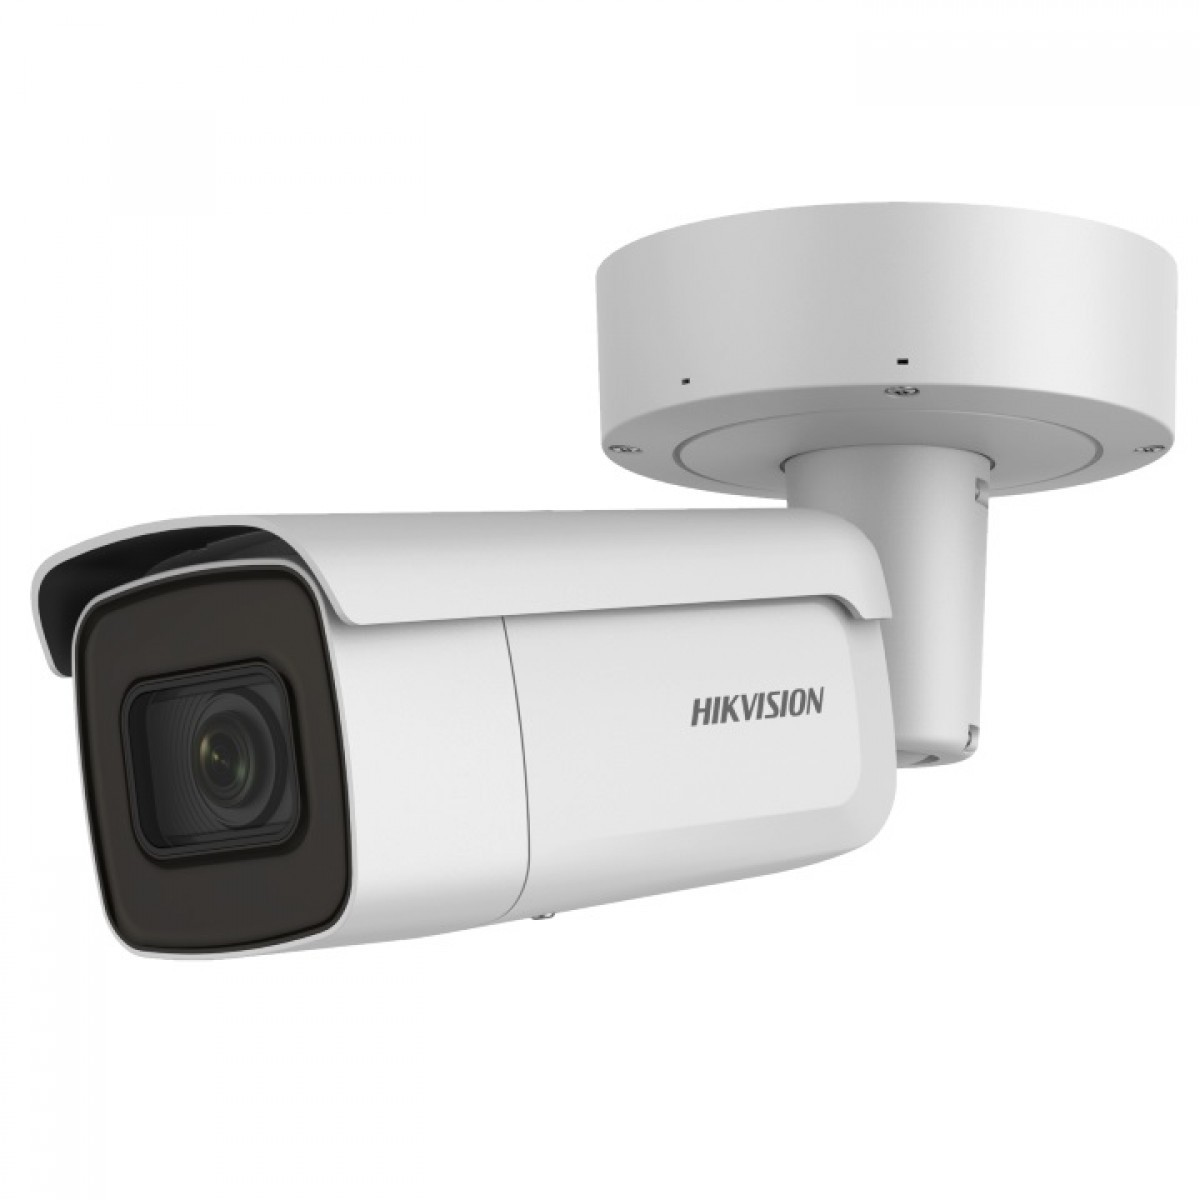 Hikvision DS-2CD2645FWD-IZS H.265 4MP 2.8-12MM Motorized Lens 30M IR SD-Card POE VCA DarkFighter Bullet IP Network Security Camera CCTV